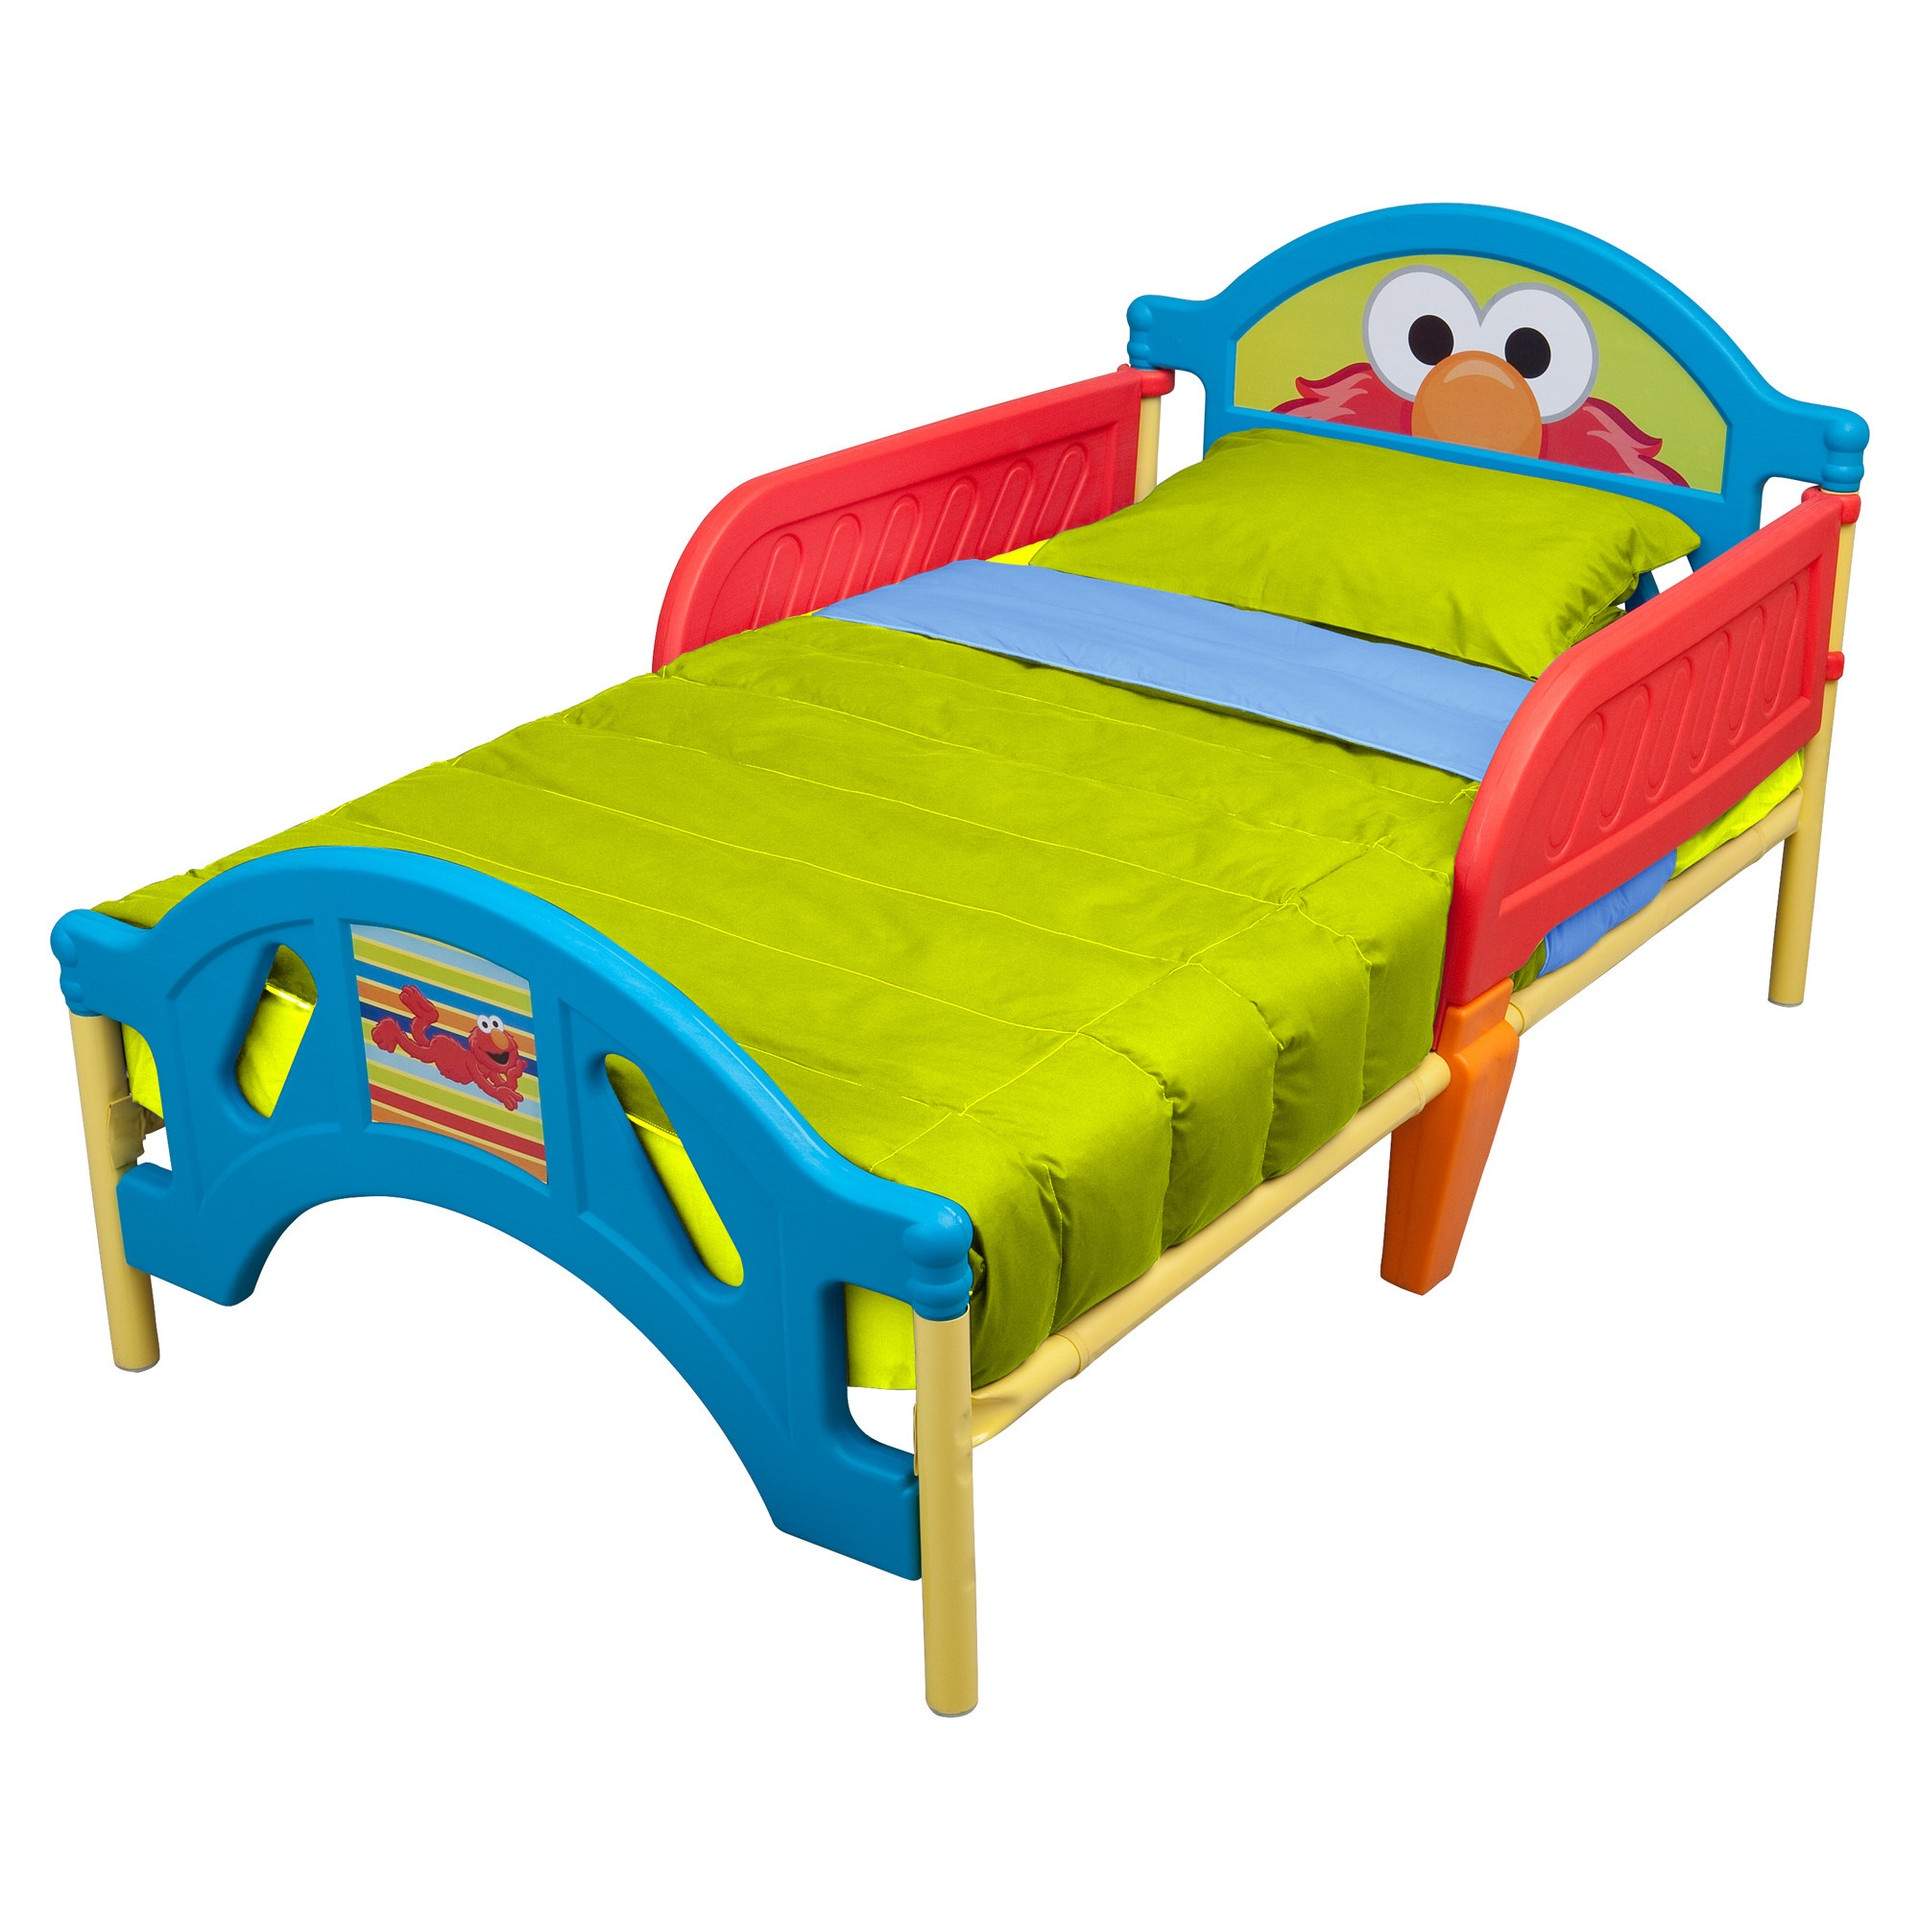 SESAME STREET TODDLER BED